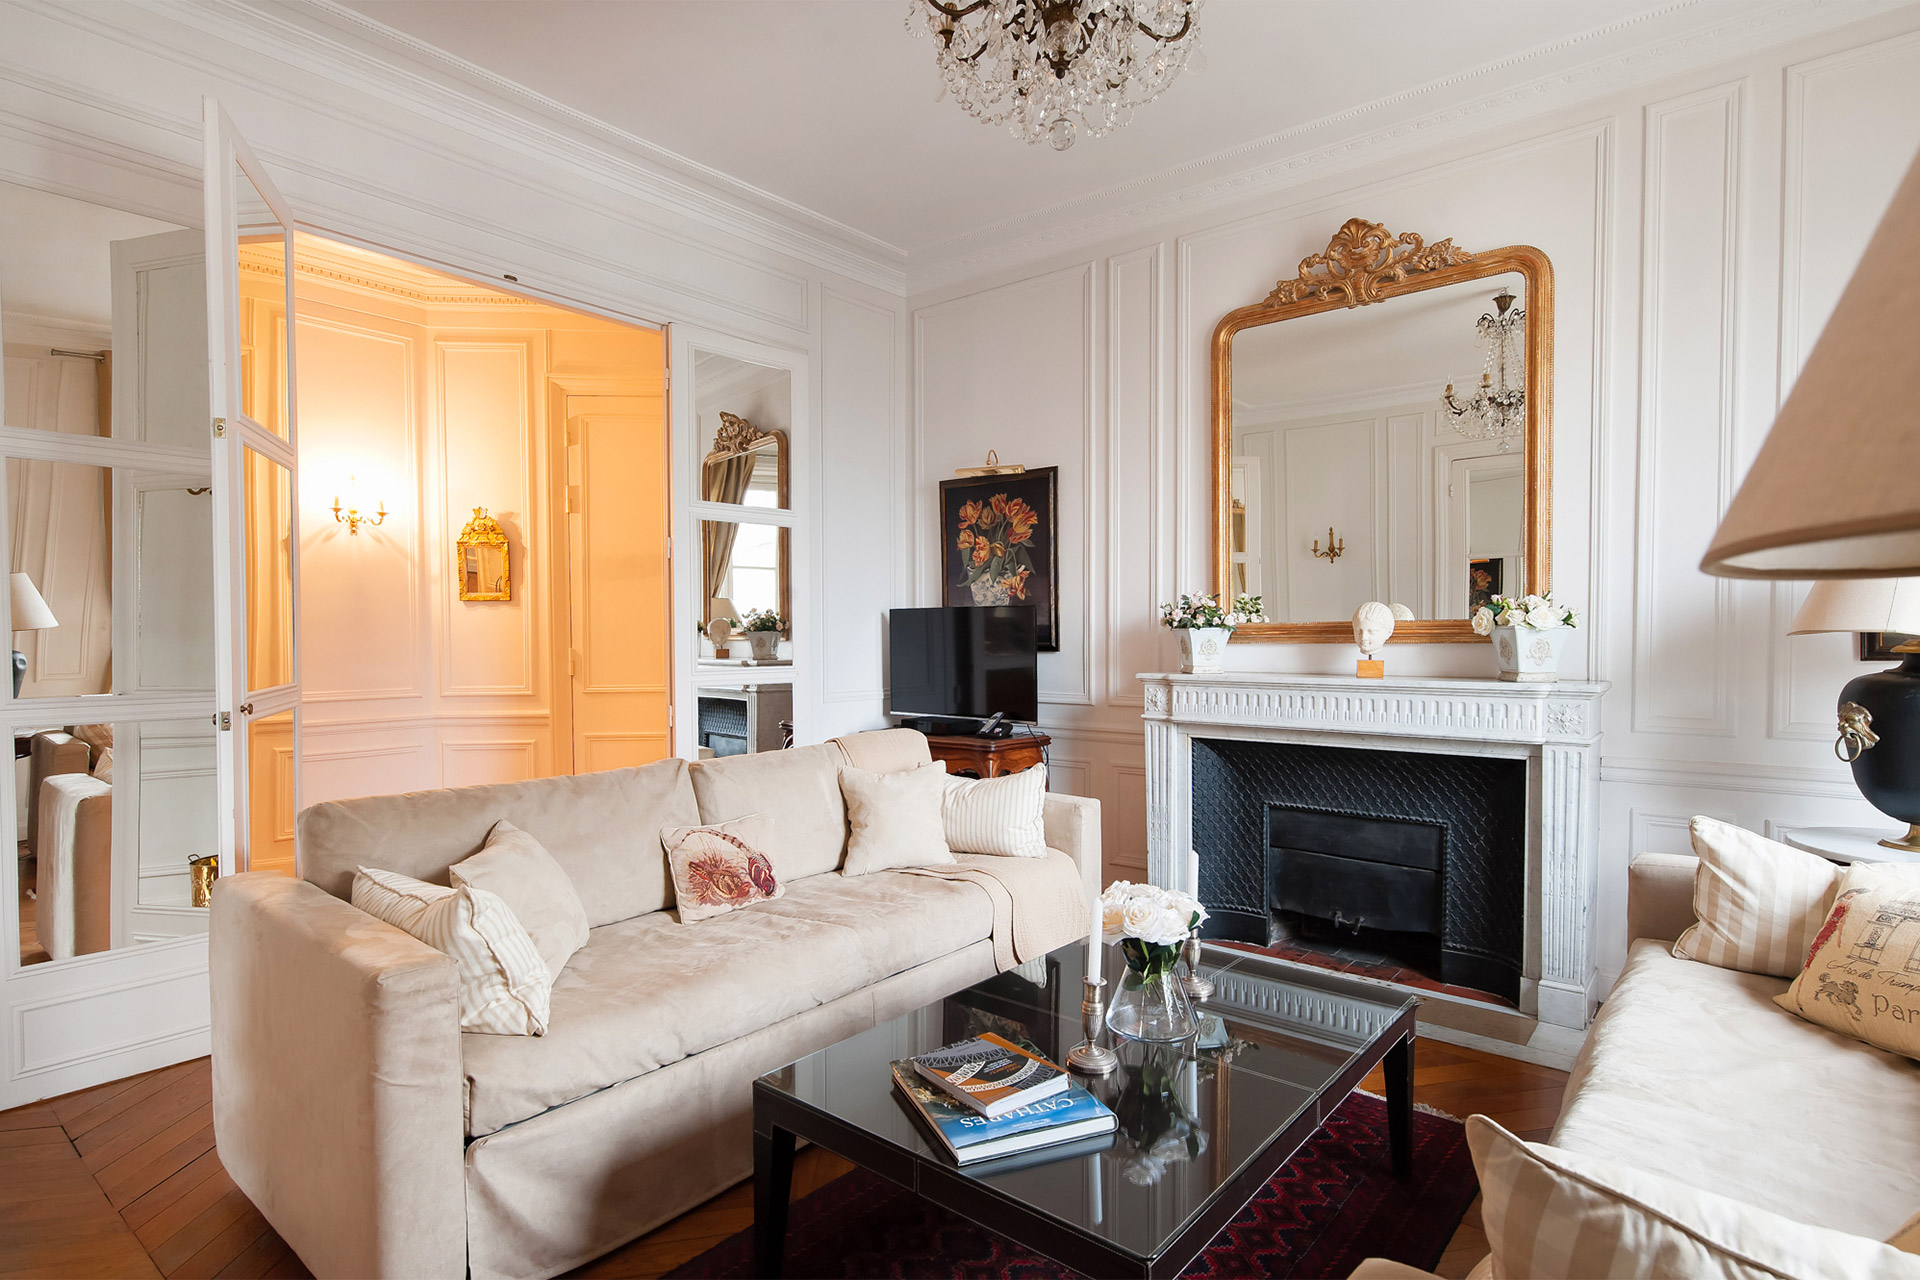 Mirrored French doors divide the living area of the Chateauneuf vacation rental offered by Paris Perfect